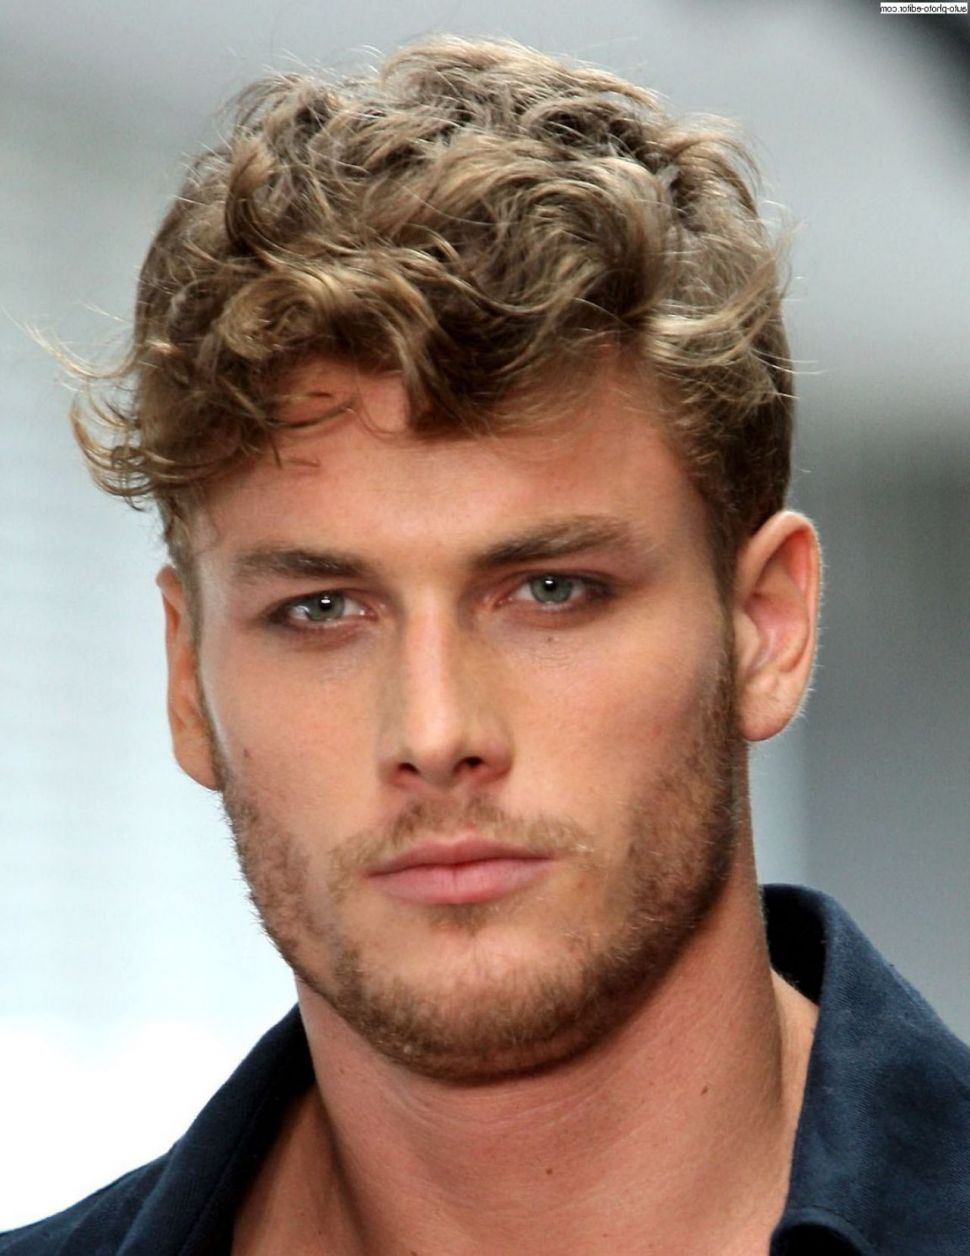 14+ Cool hairstyles for blonde guys ideas in 2021